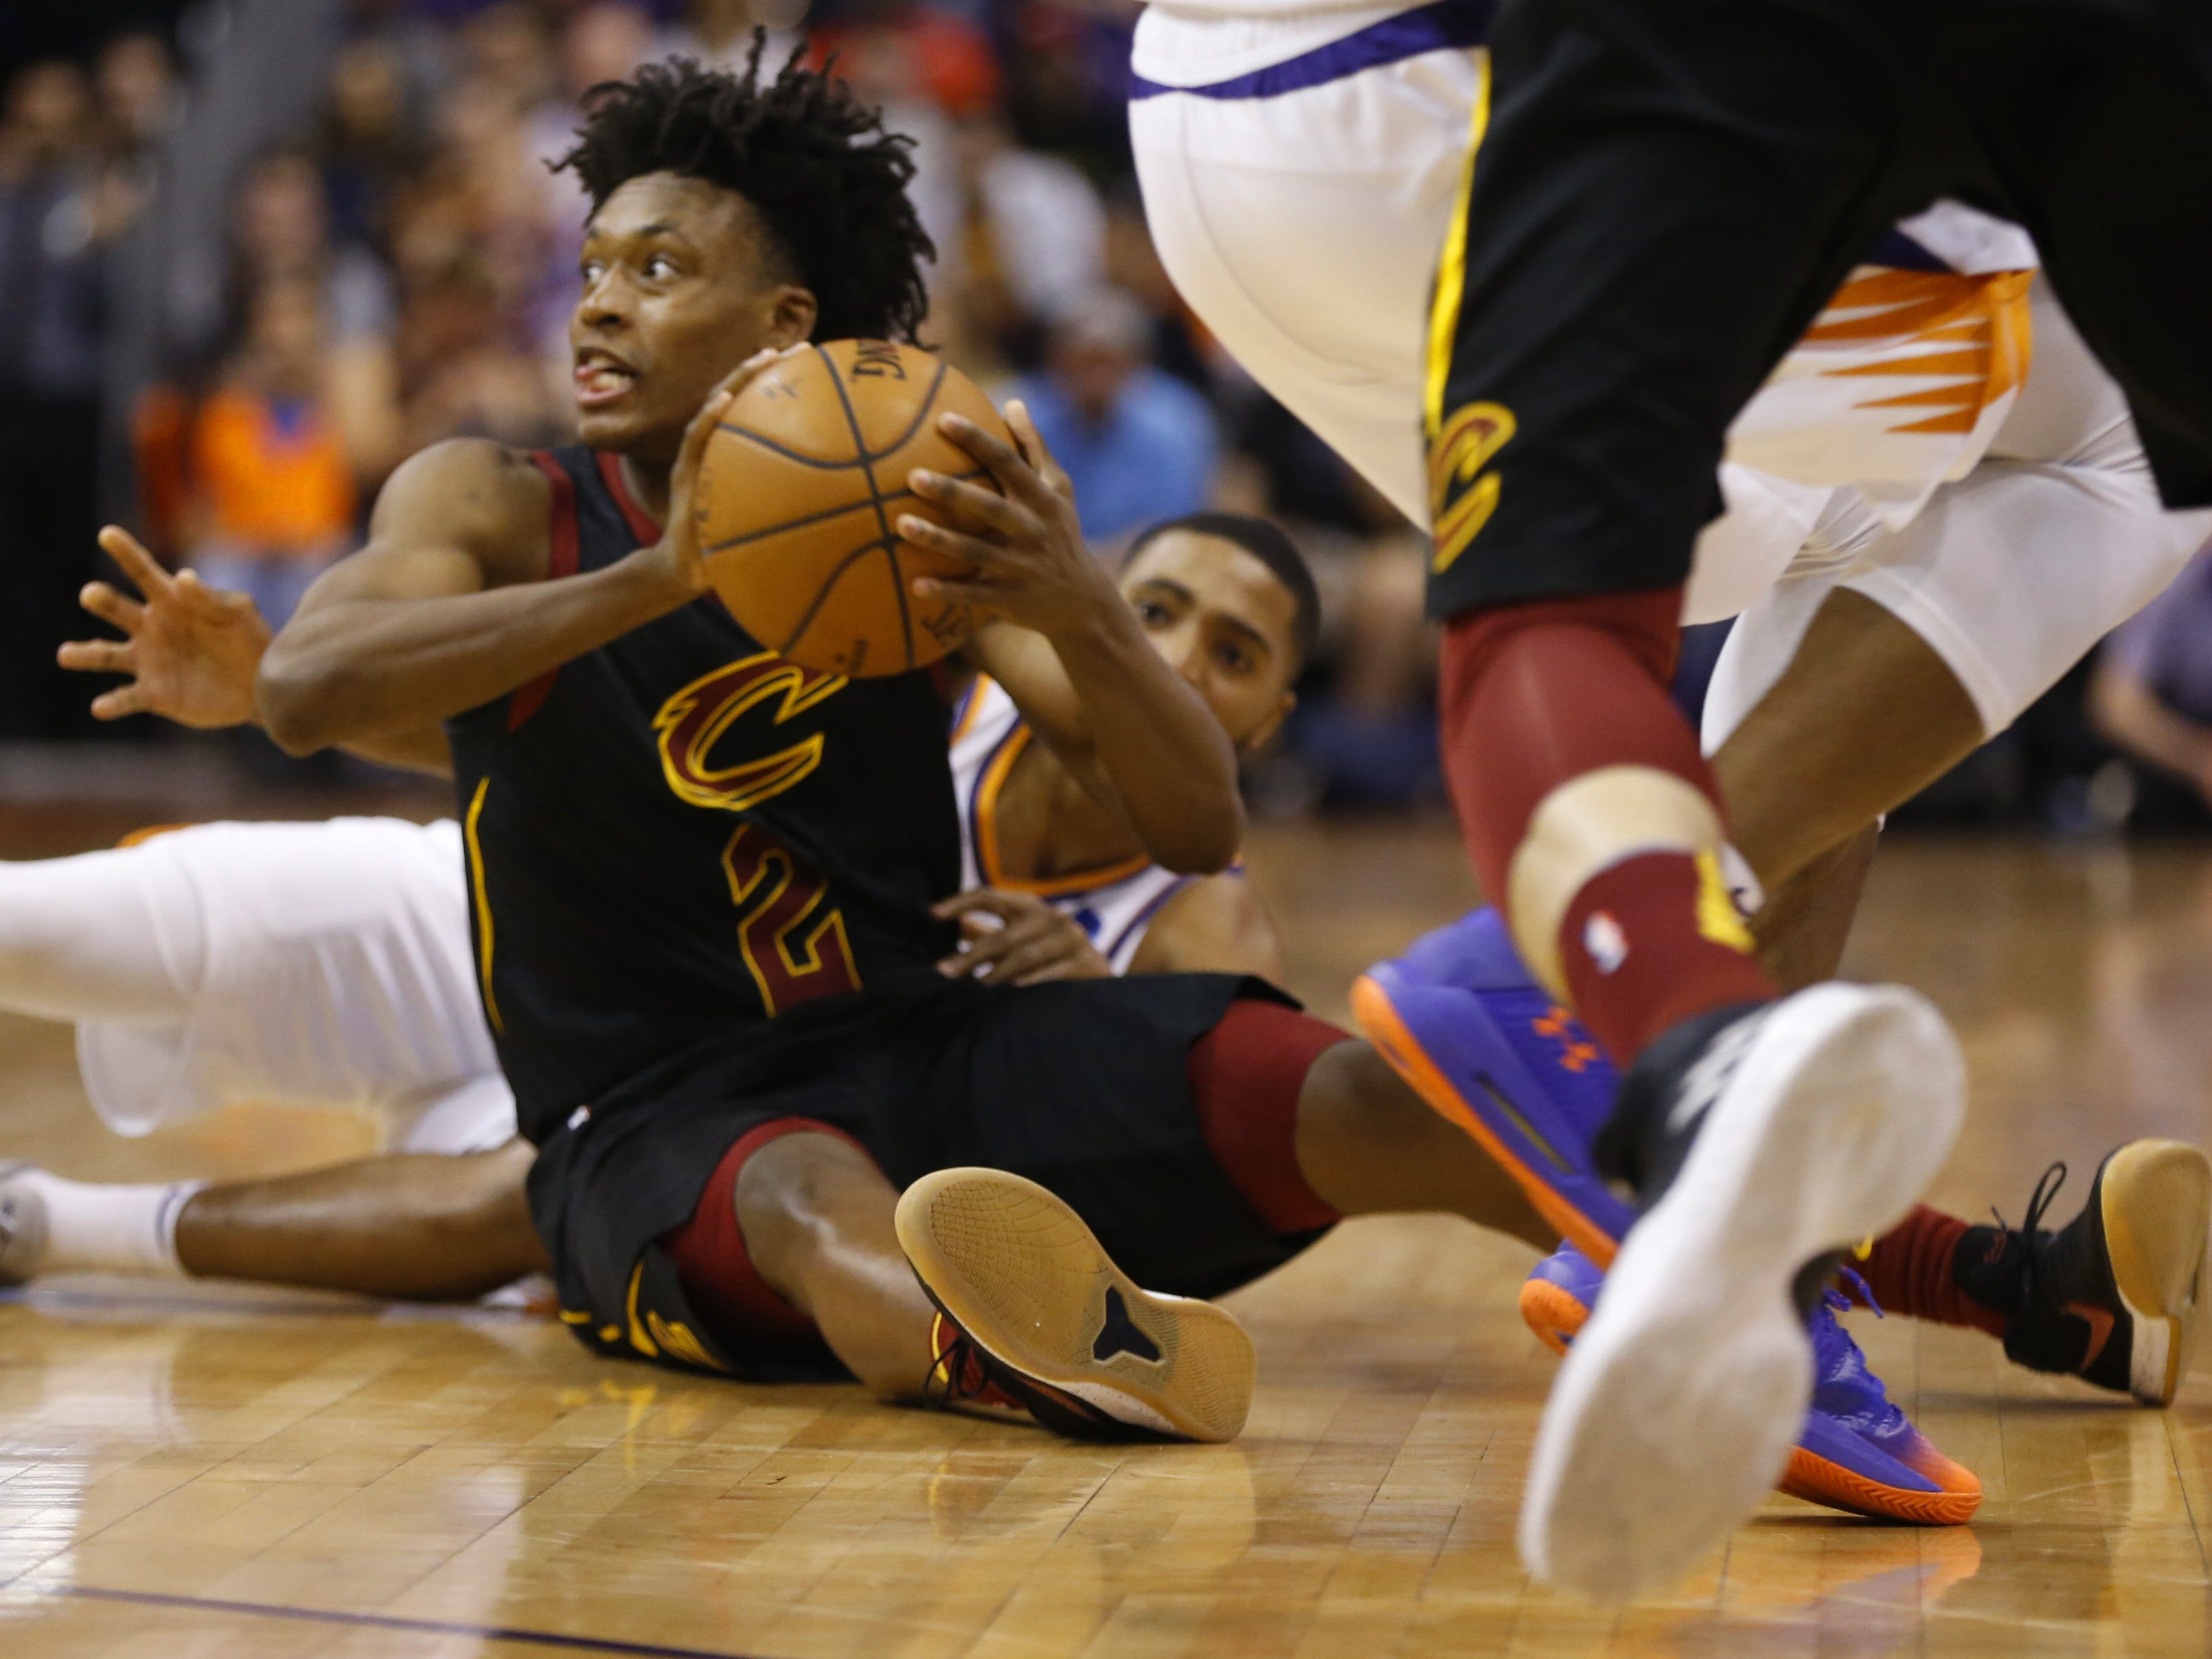 Cavaliers' Collin Sexton (2) recovers a loose ball against Suns' Mikal Bridges during the second half at Talking Stick Resort Arena in Phoenix, Ariz. on April 1, 2019.